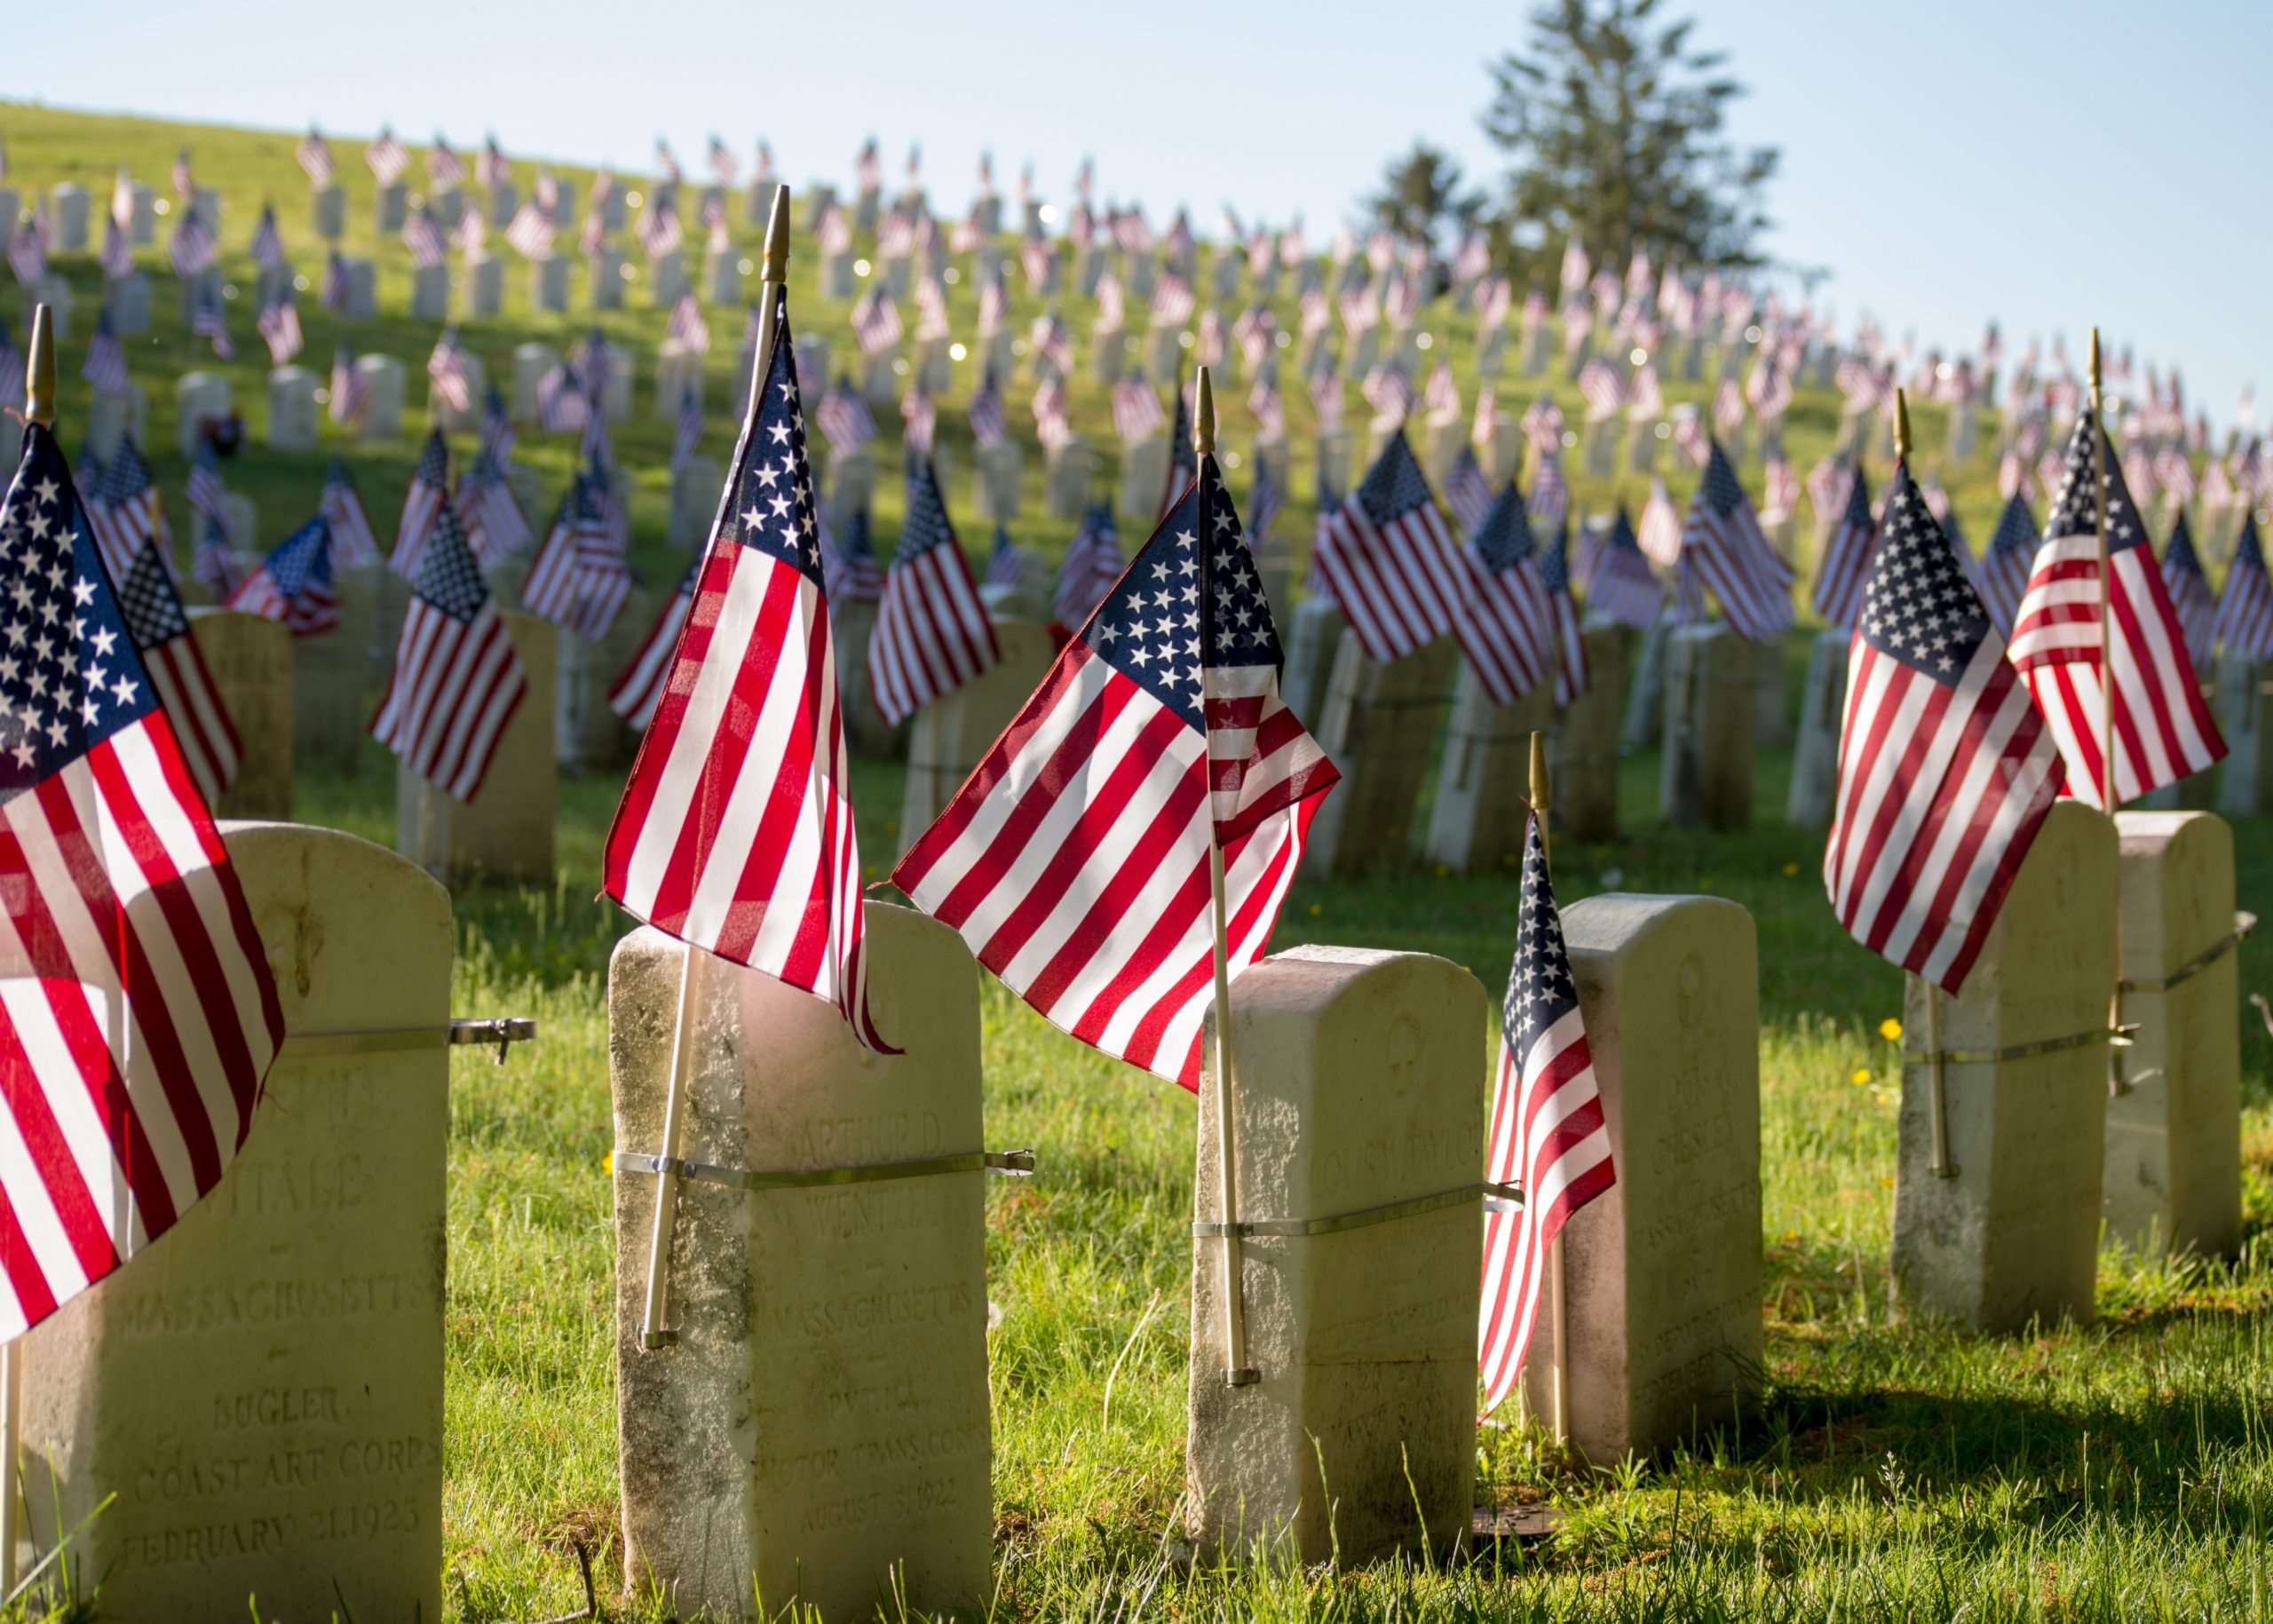 On Monday, May 31st, the offices of iPost will be closed in observance of Memorial Day here in the United States.